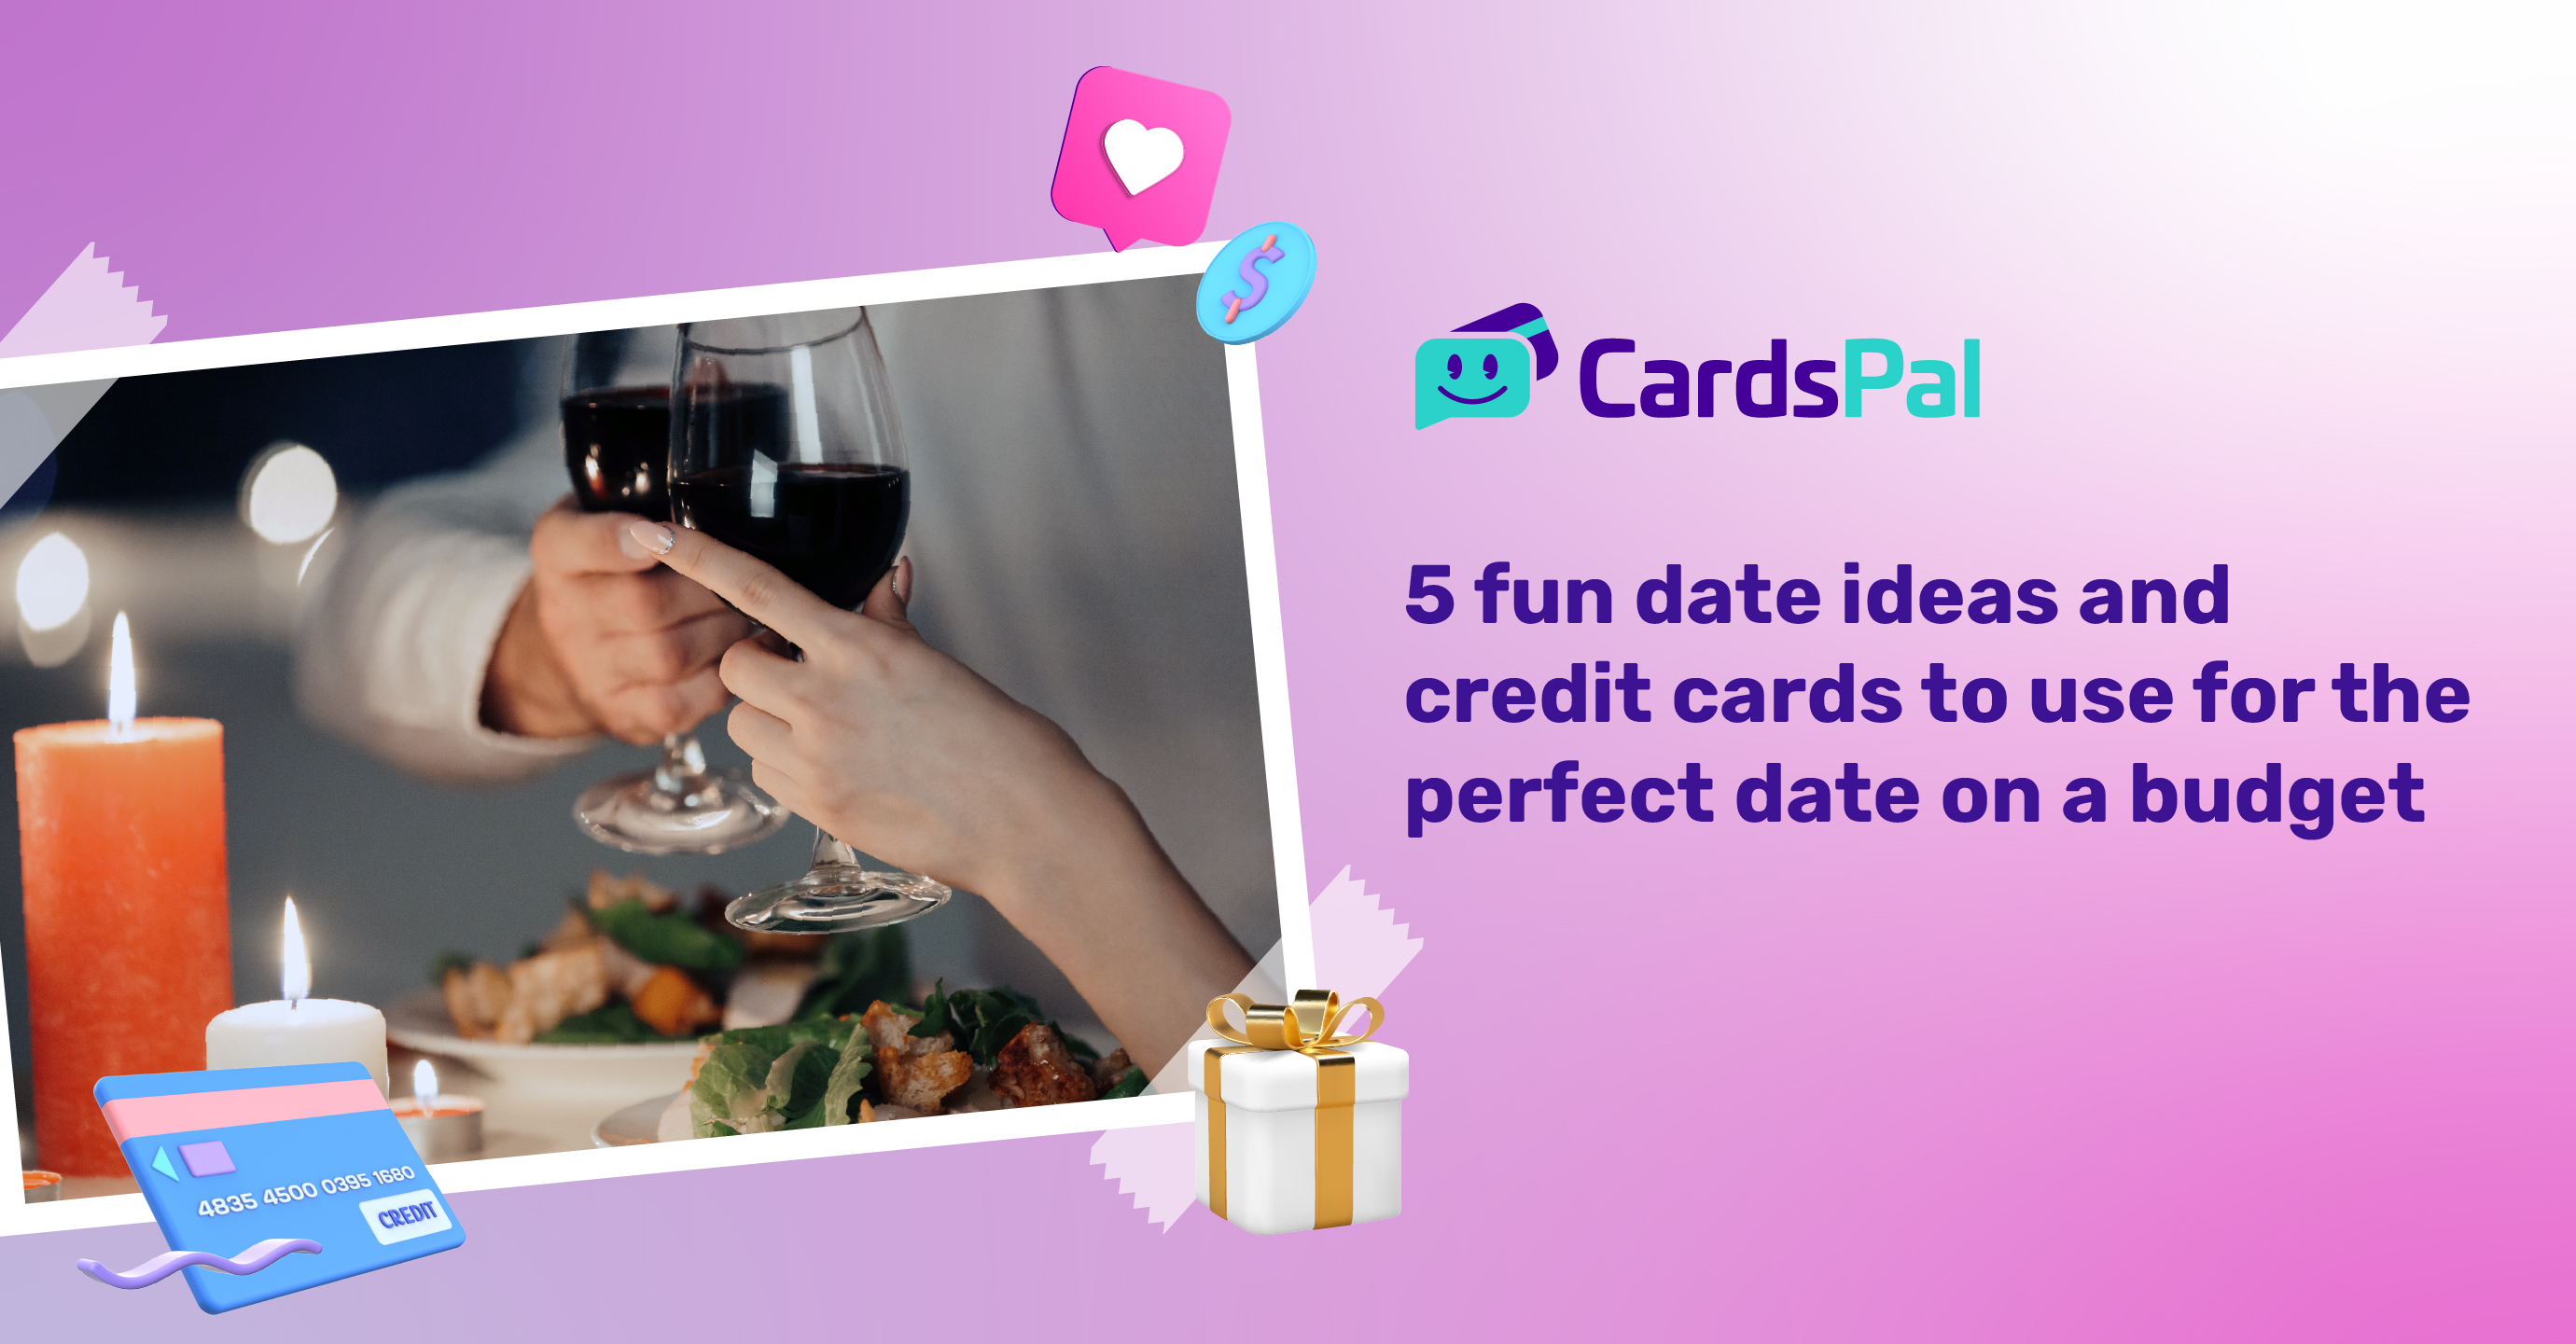 5 fun date ideas and credit cards to use for the perfect date on a budget